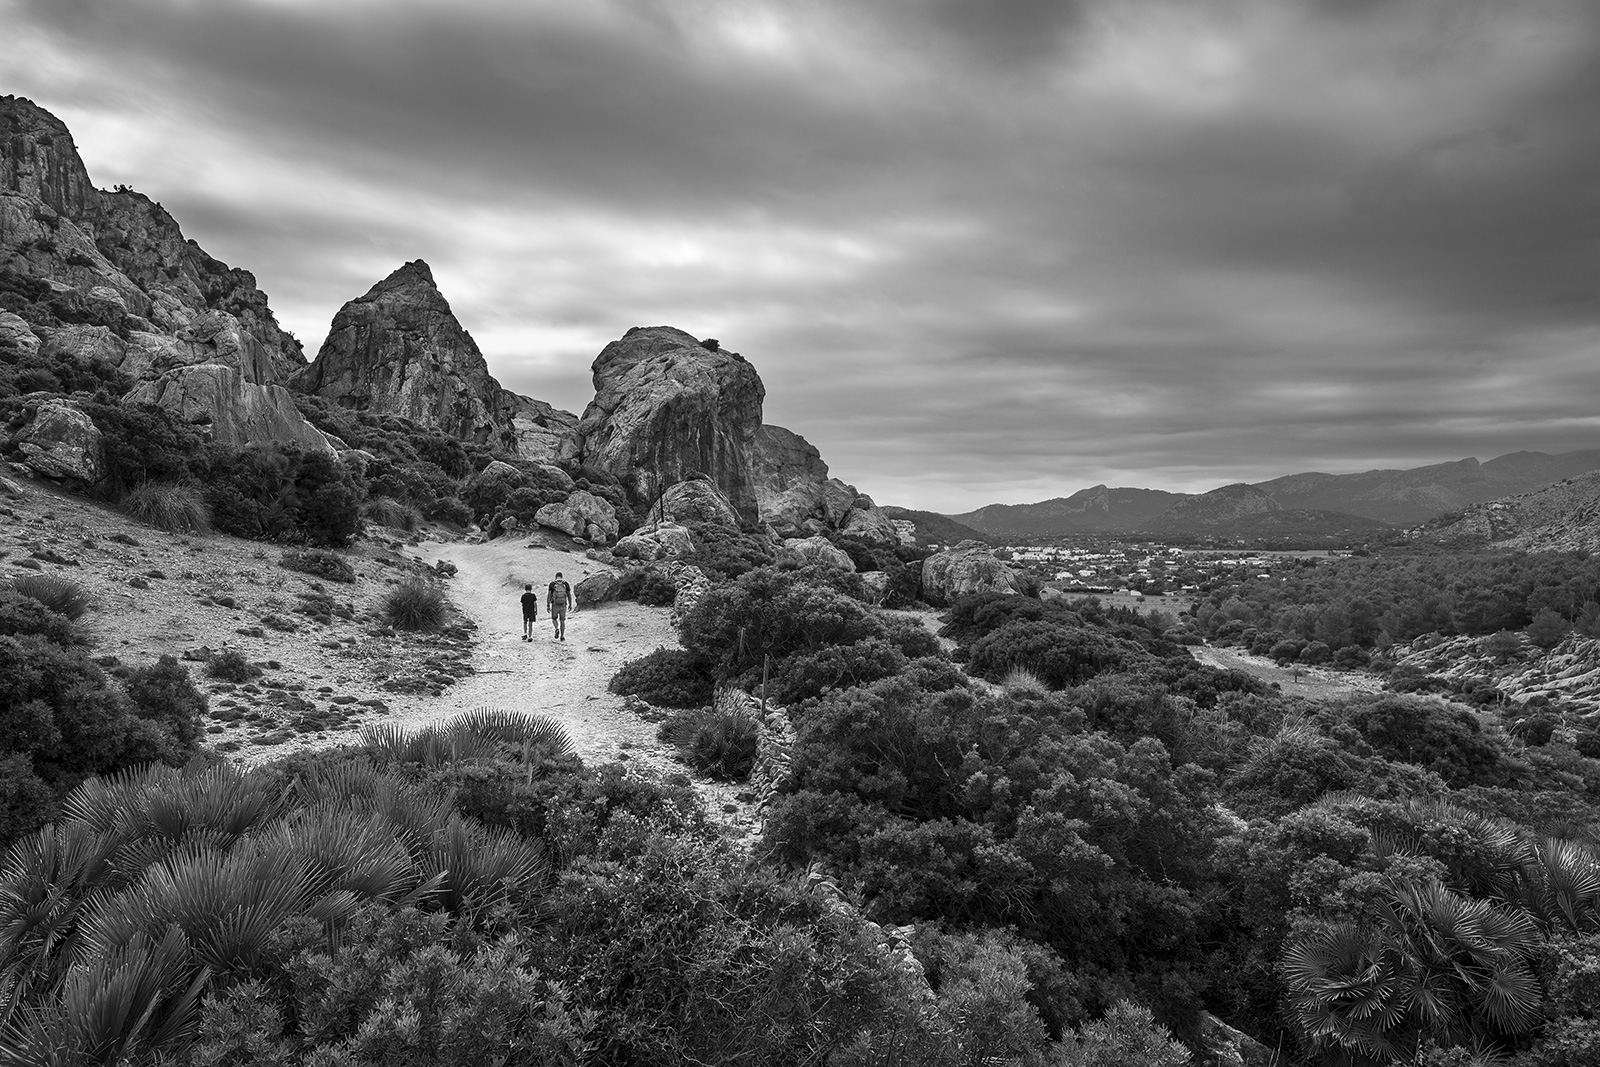 Father and son walking on footpath towards rocky outcrop with view of mountains and Port de Pollenca in background black and white landscape Boquer Valley Mallorca Spain ©P.Maton 2019 eyeteeth.net